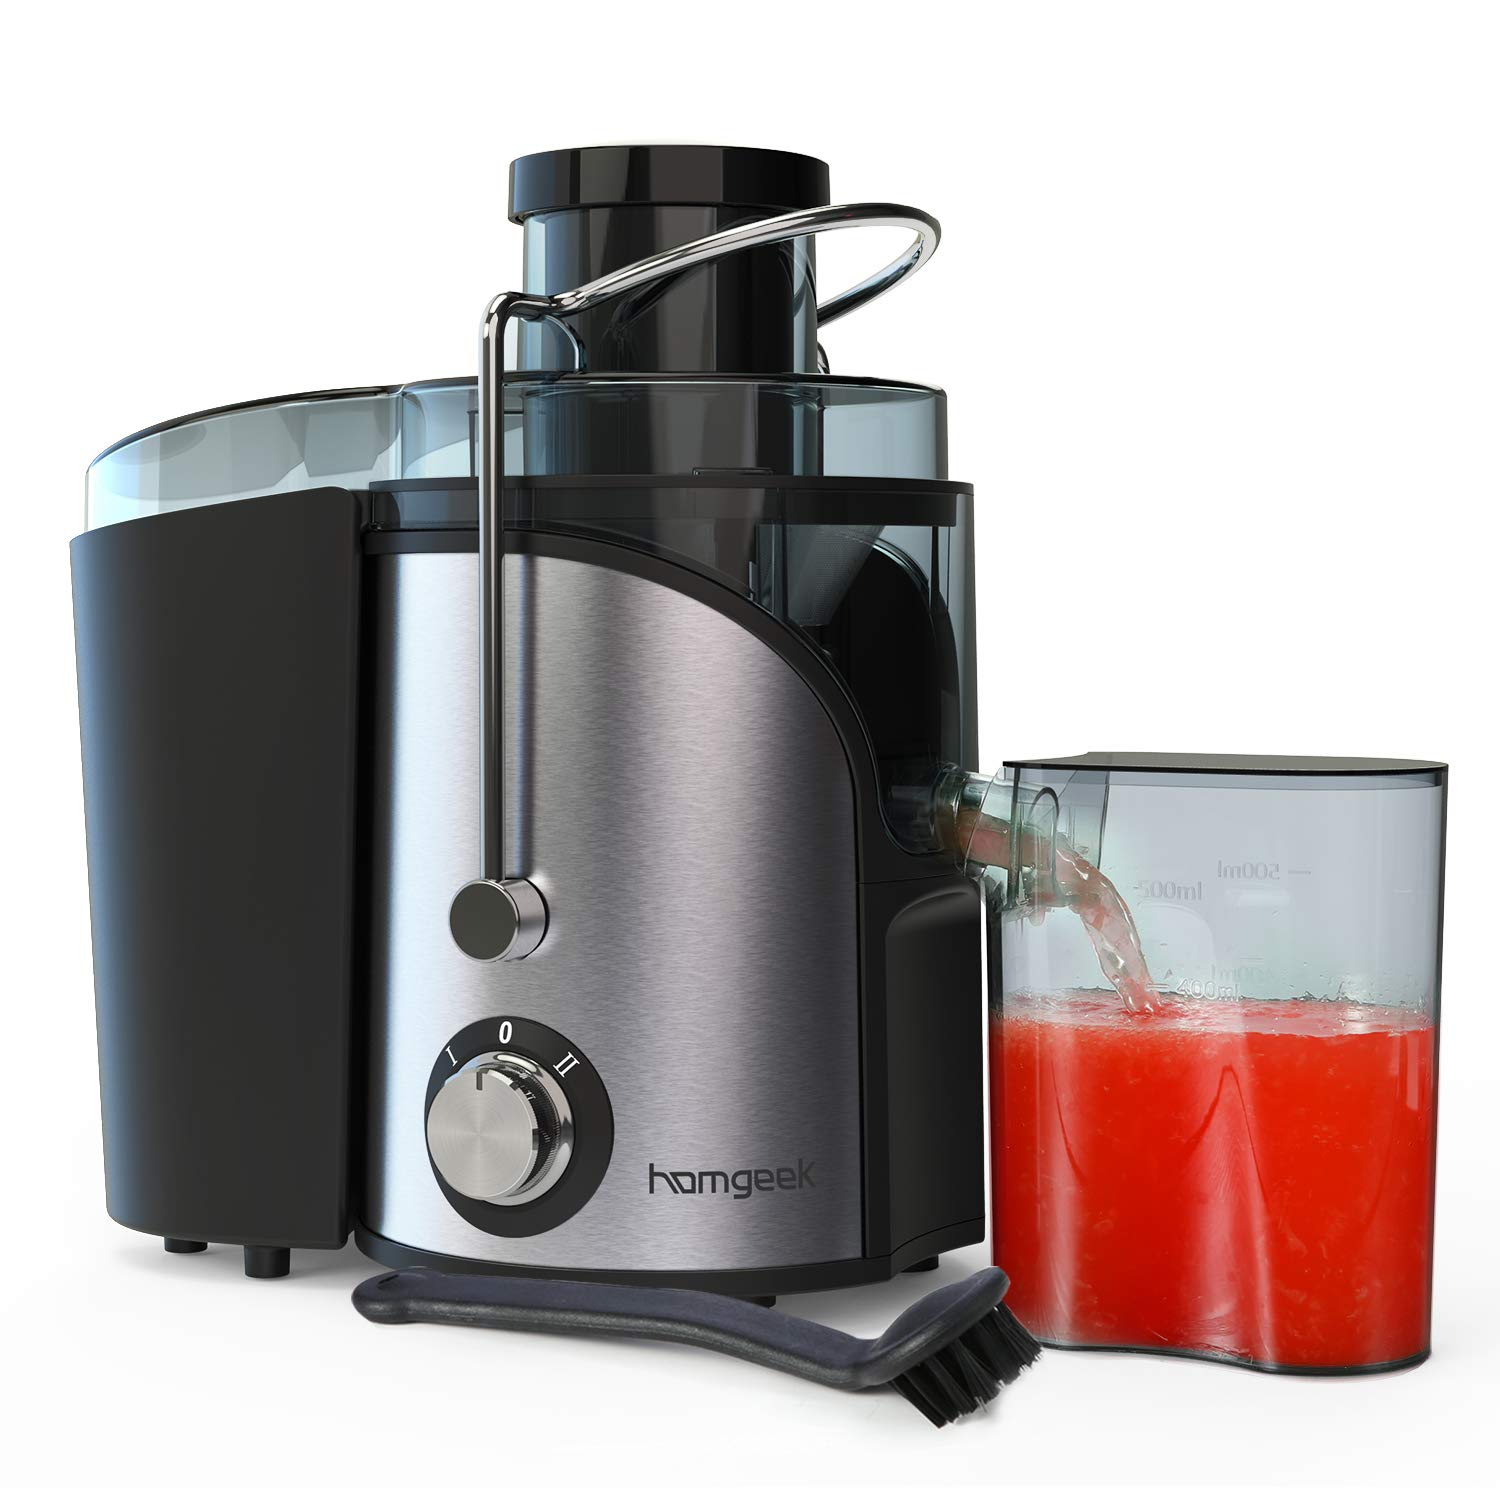 Juicer, Homgeek vegetable Juicer Machines, Dual Speed small Juicer with Anti-drip Kit Design, Easy to Clean, Stainless…